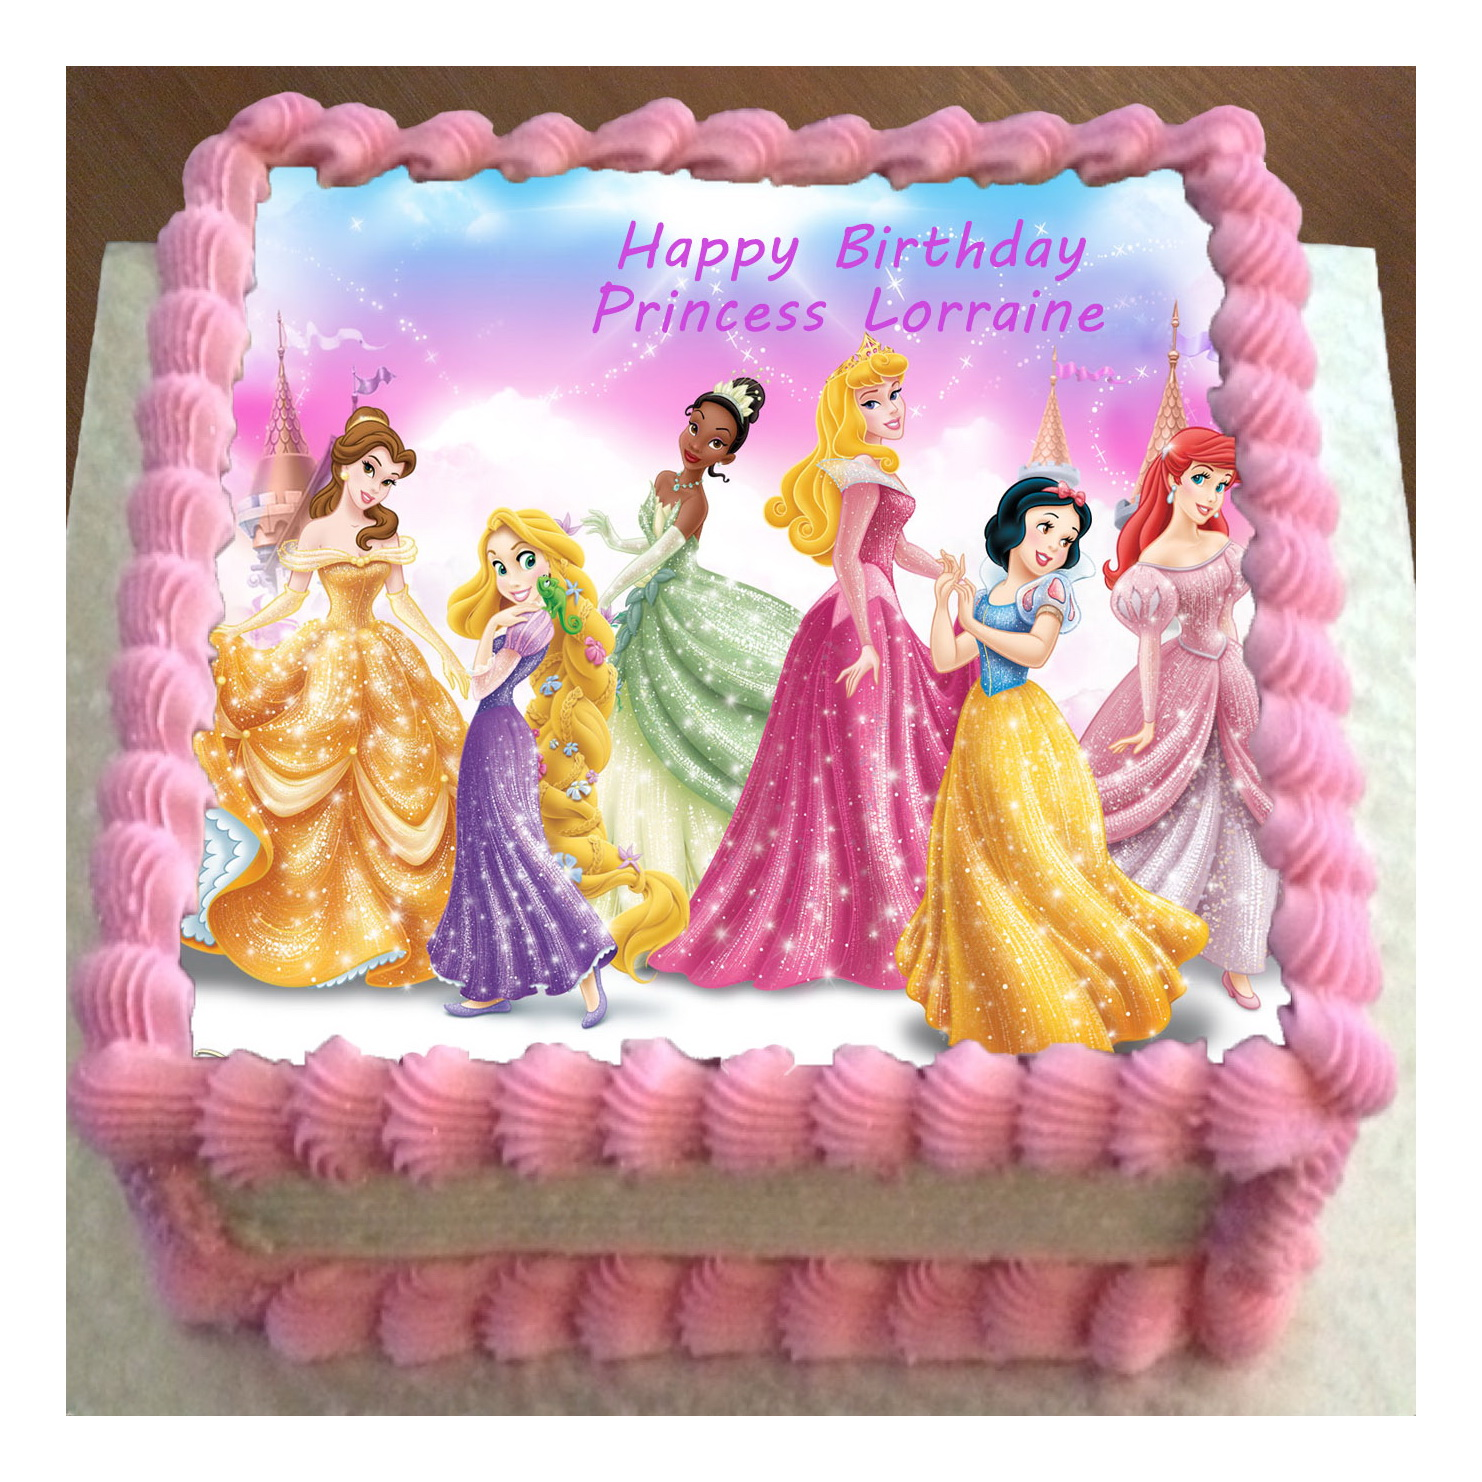 Disney Princess 2 Cake Ideas and Designs